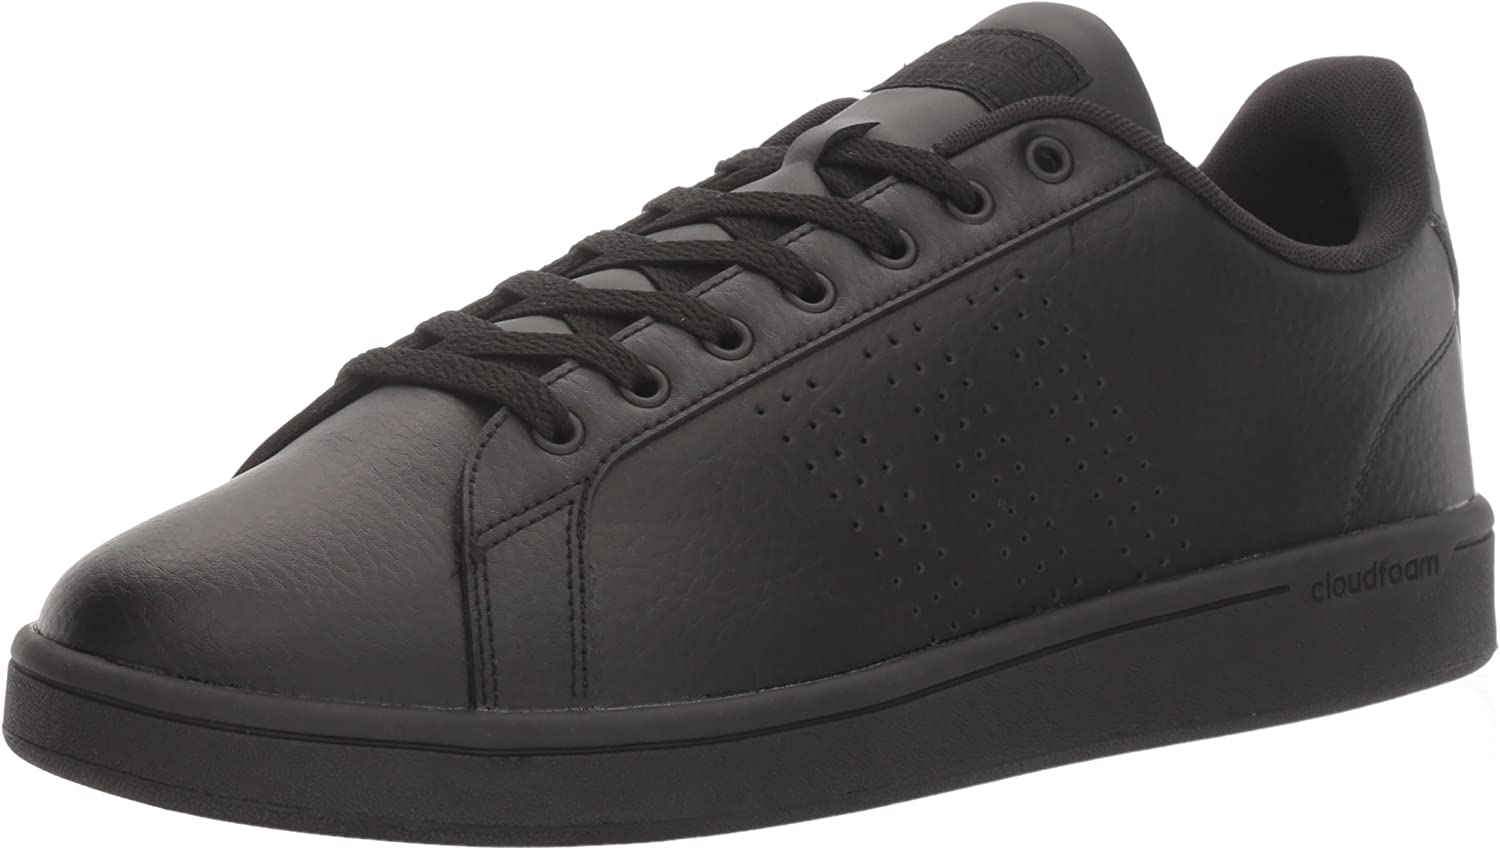 Adidas Men's Cloudfoam Advantage Clean Sneaker Sneakers